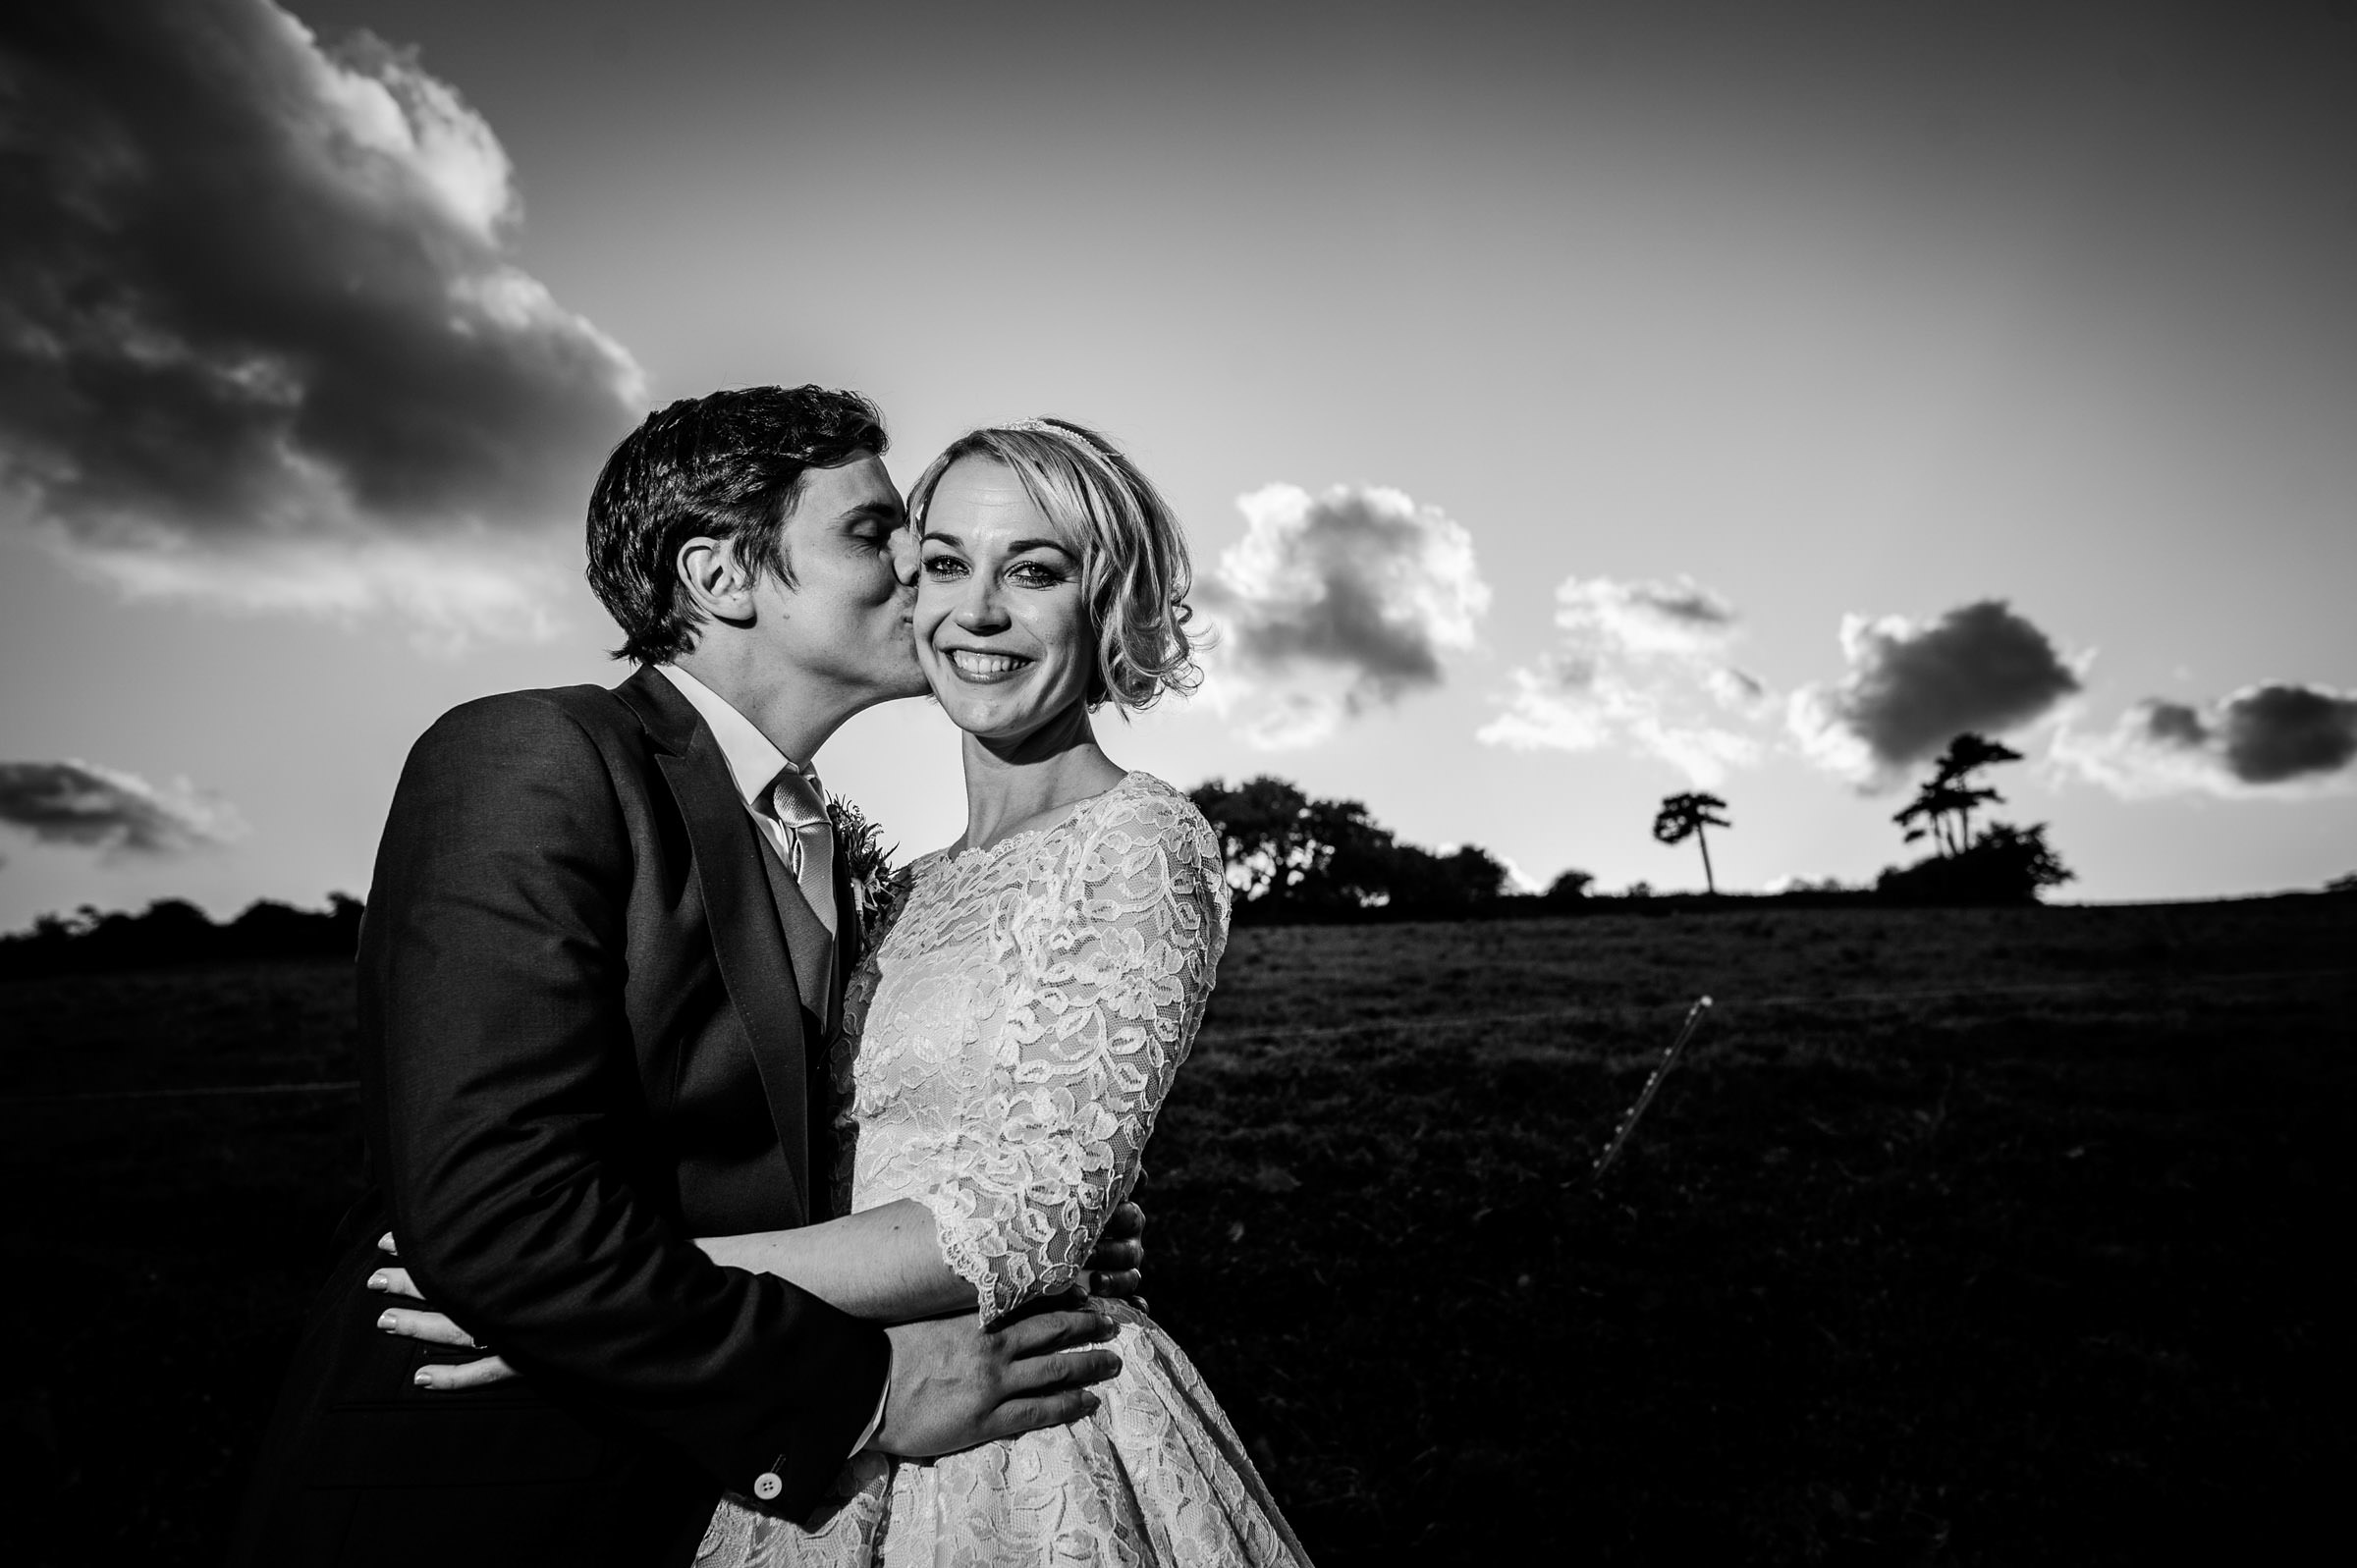 Reportage Wedding Photography South Wales 055.jpg